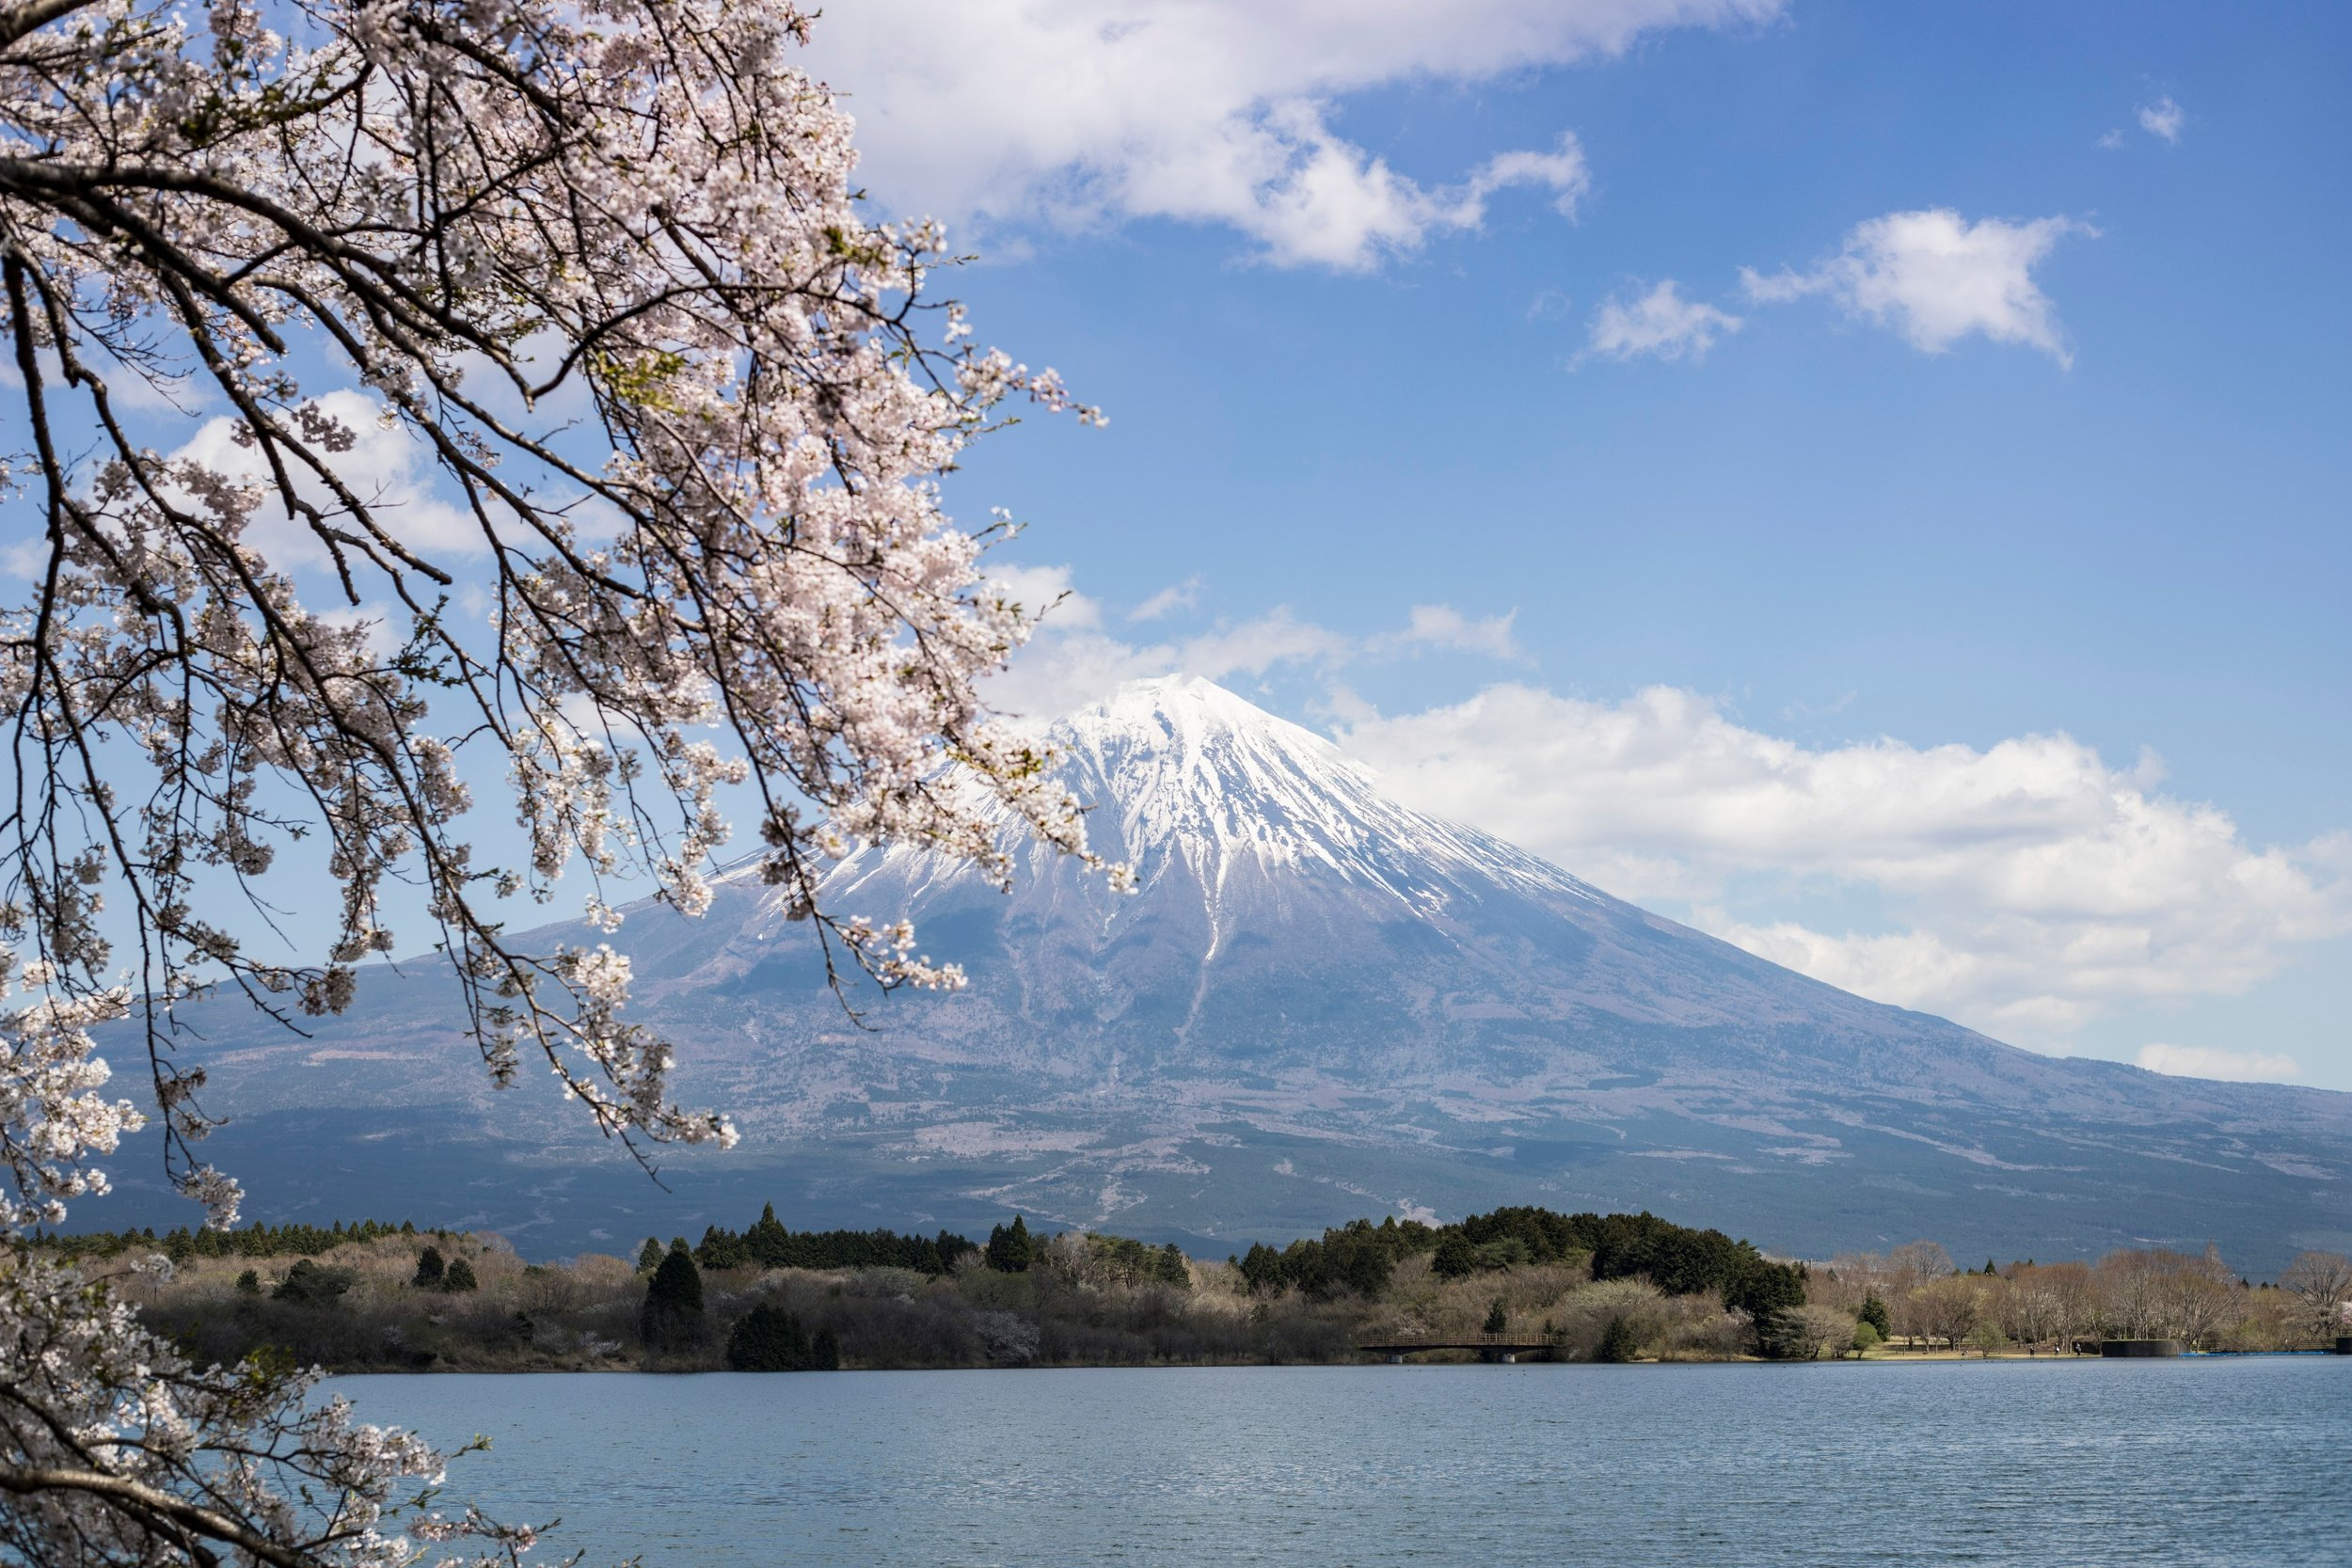 Cherry Blossom and Mt. Fuji, Japan